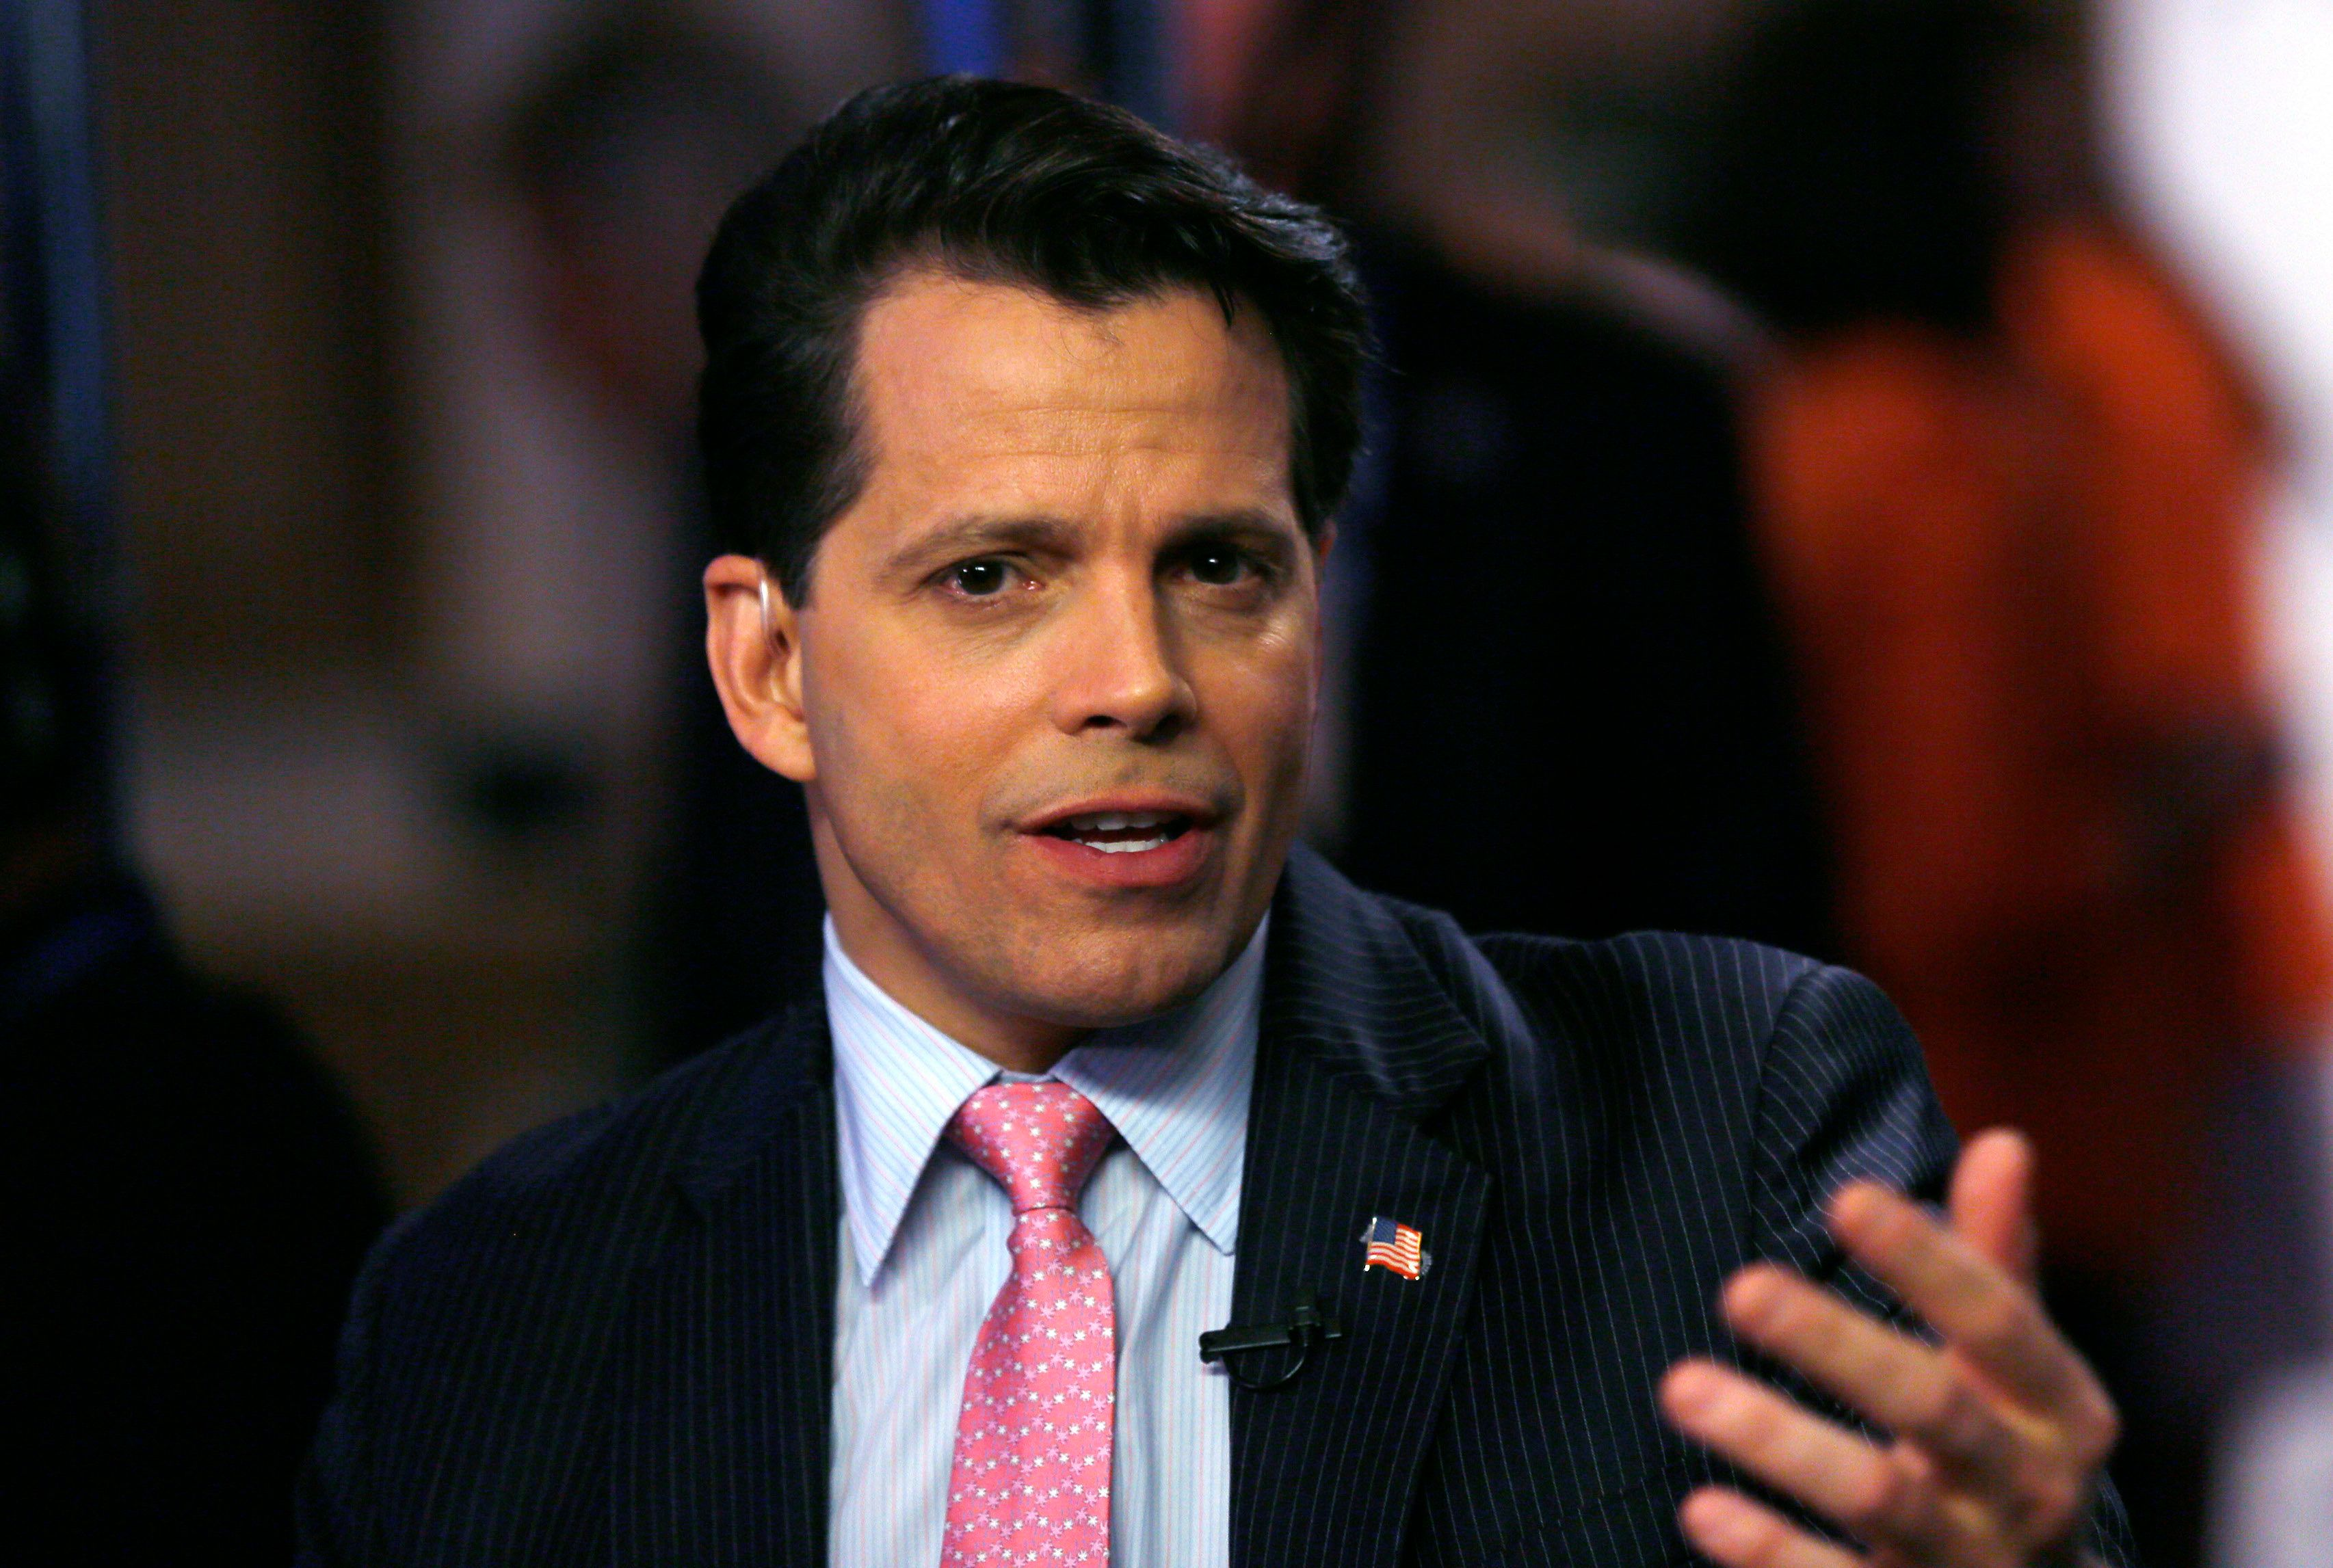 Anthony Scaramucci, co-managing partner of investment firm SkyBridge Capital, talks to a reporter at the annual Skybridge Alternatives Conference in Las Vegas May 8, 2013. REUTERS/Rick Wilking (UNITED STATES - Tags: BUSINESS)